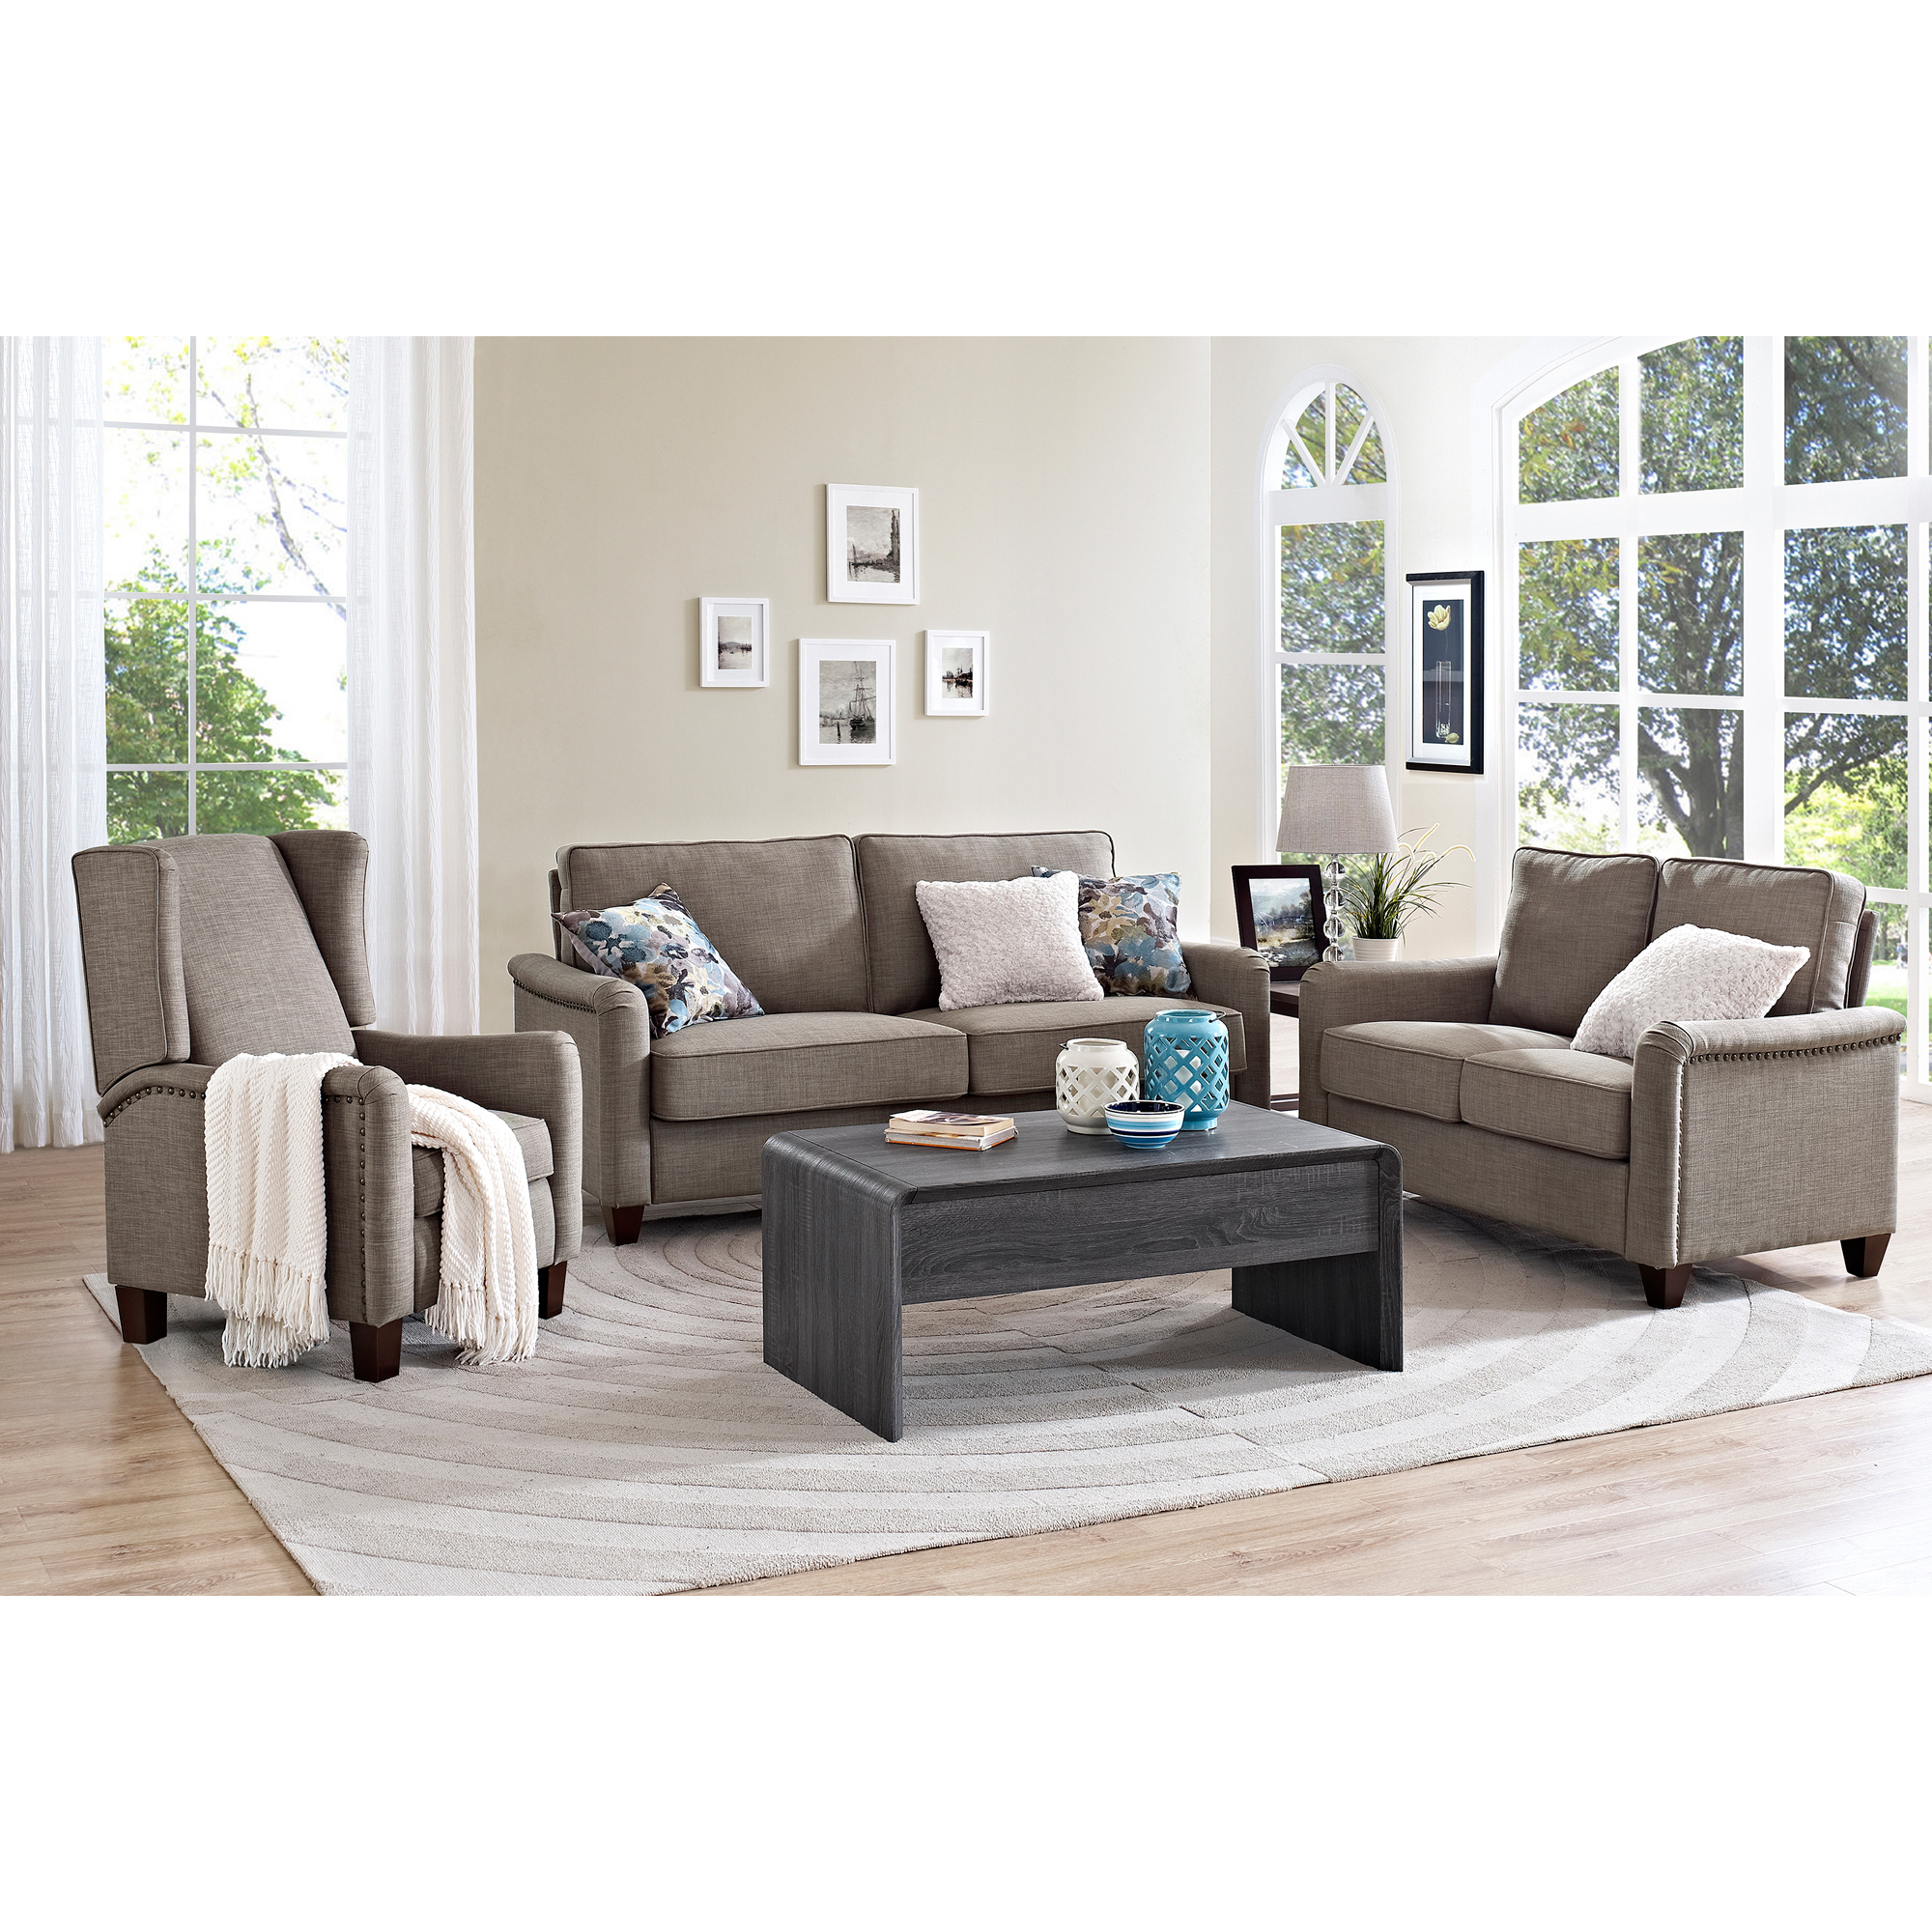 Better Homes and Gardens Grayson Living Room Collection